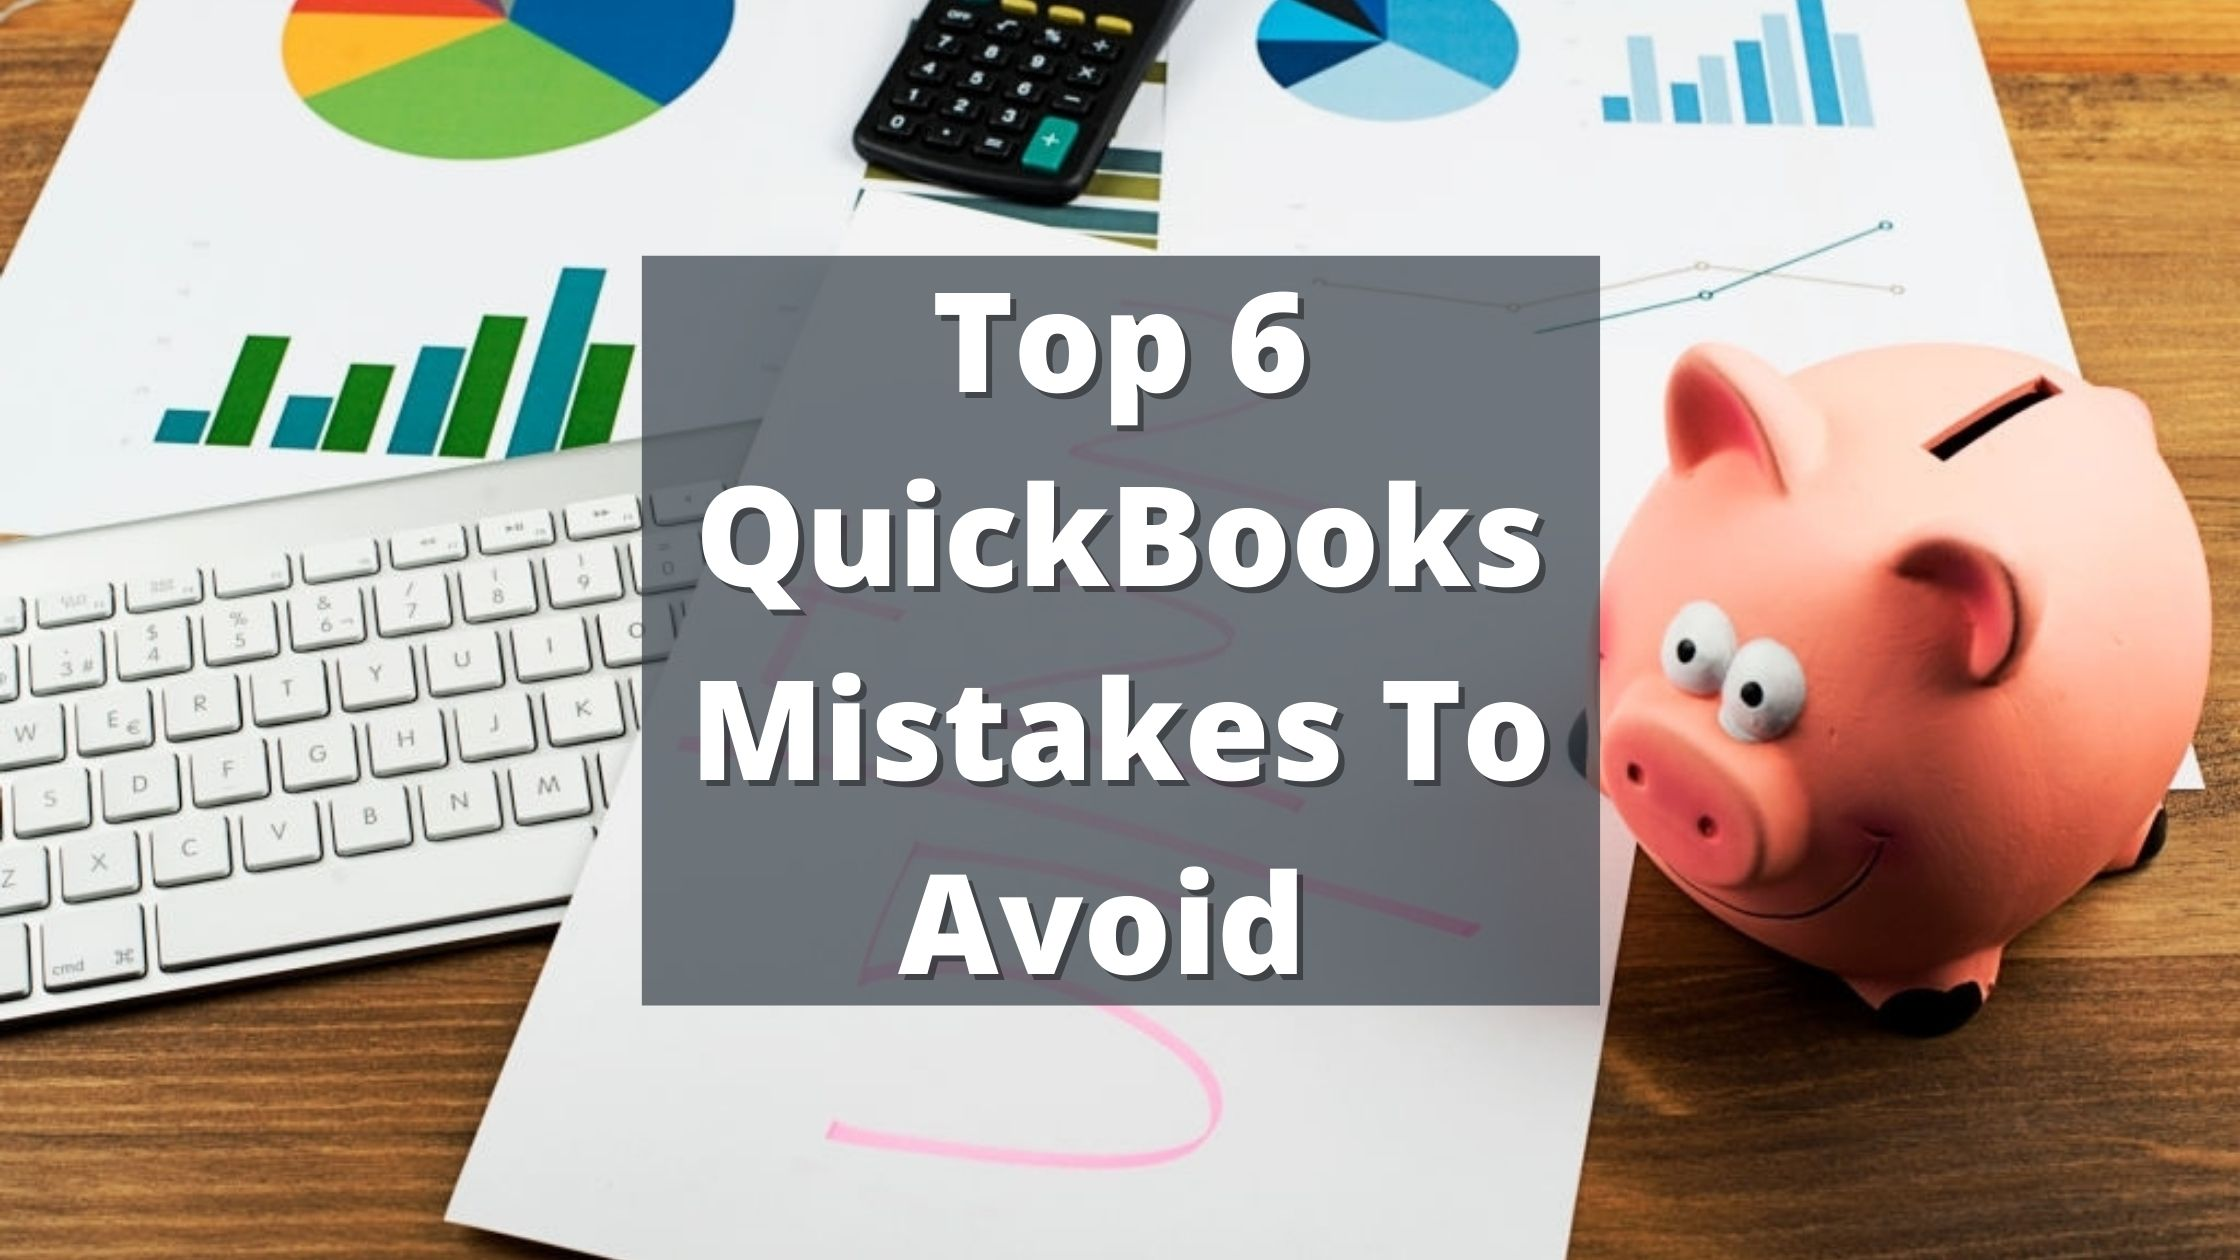 Top 6 QuickBooks Mistakes To Avoid